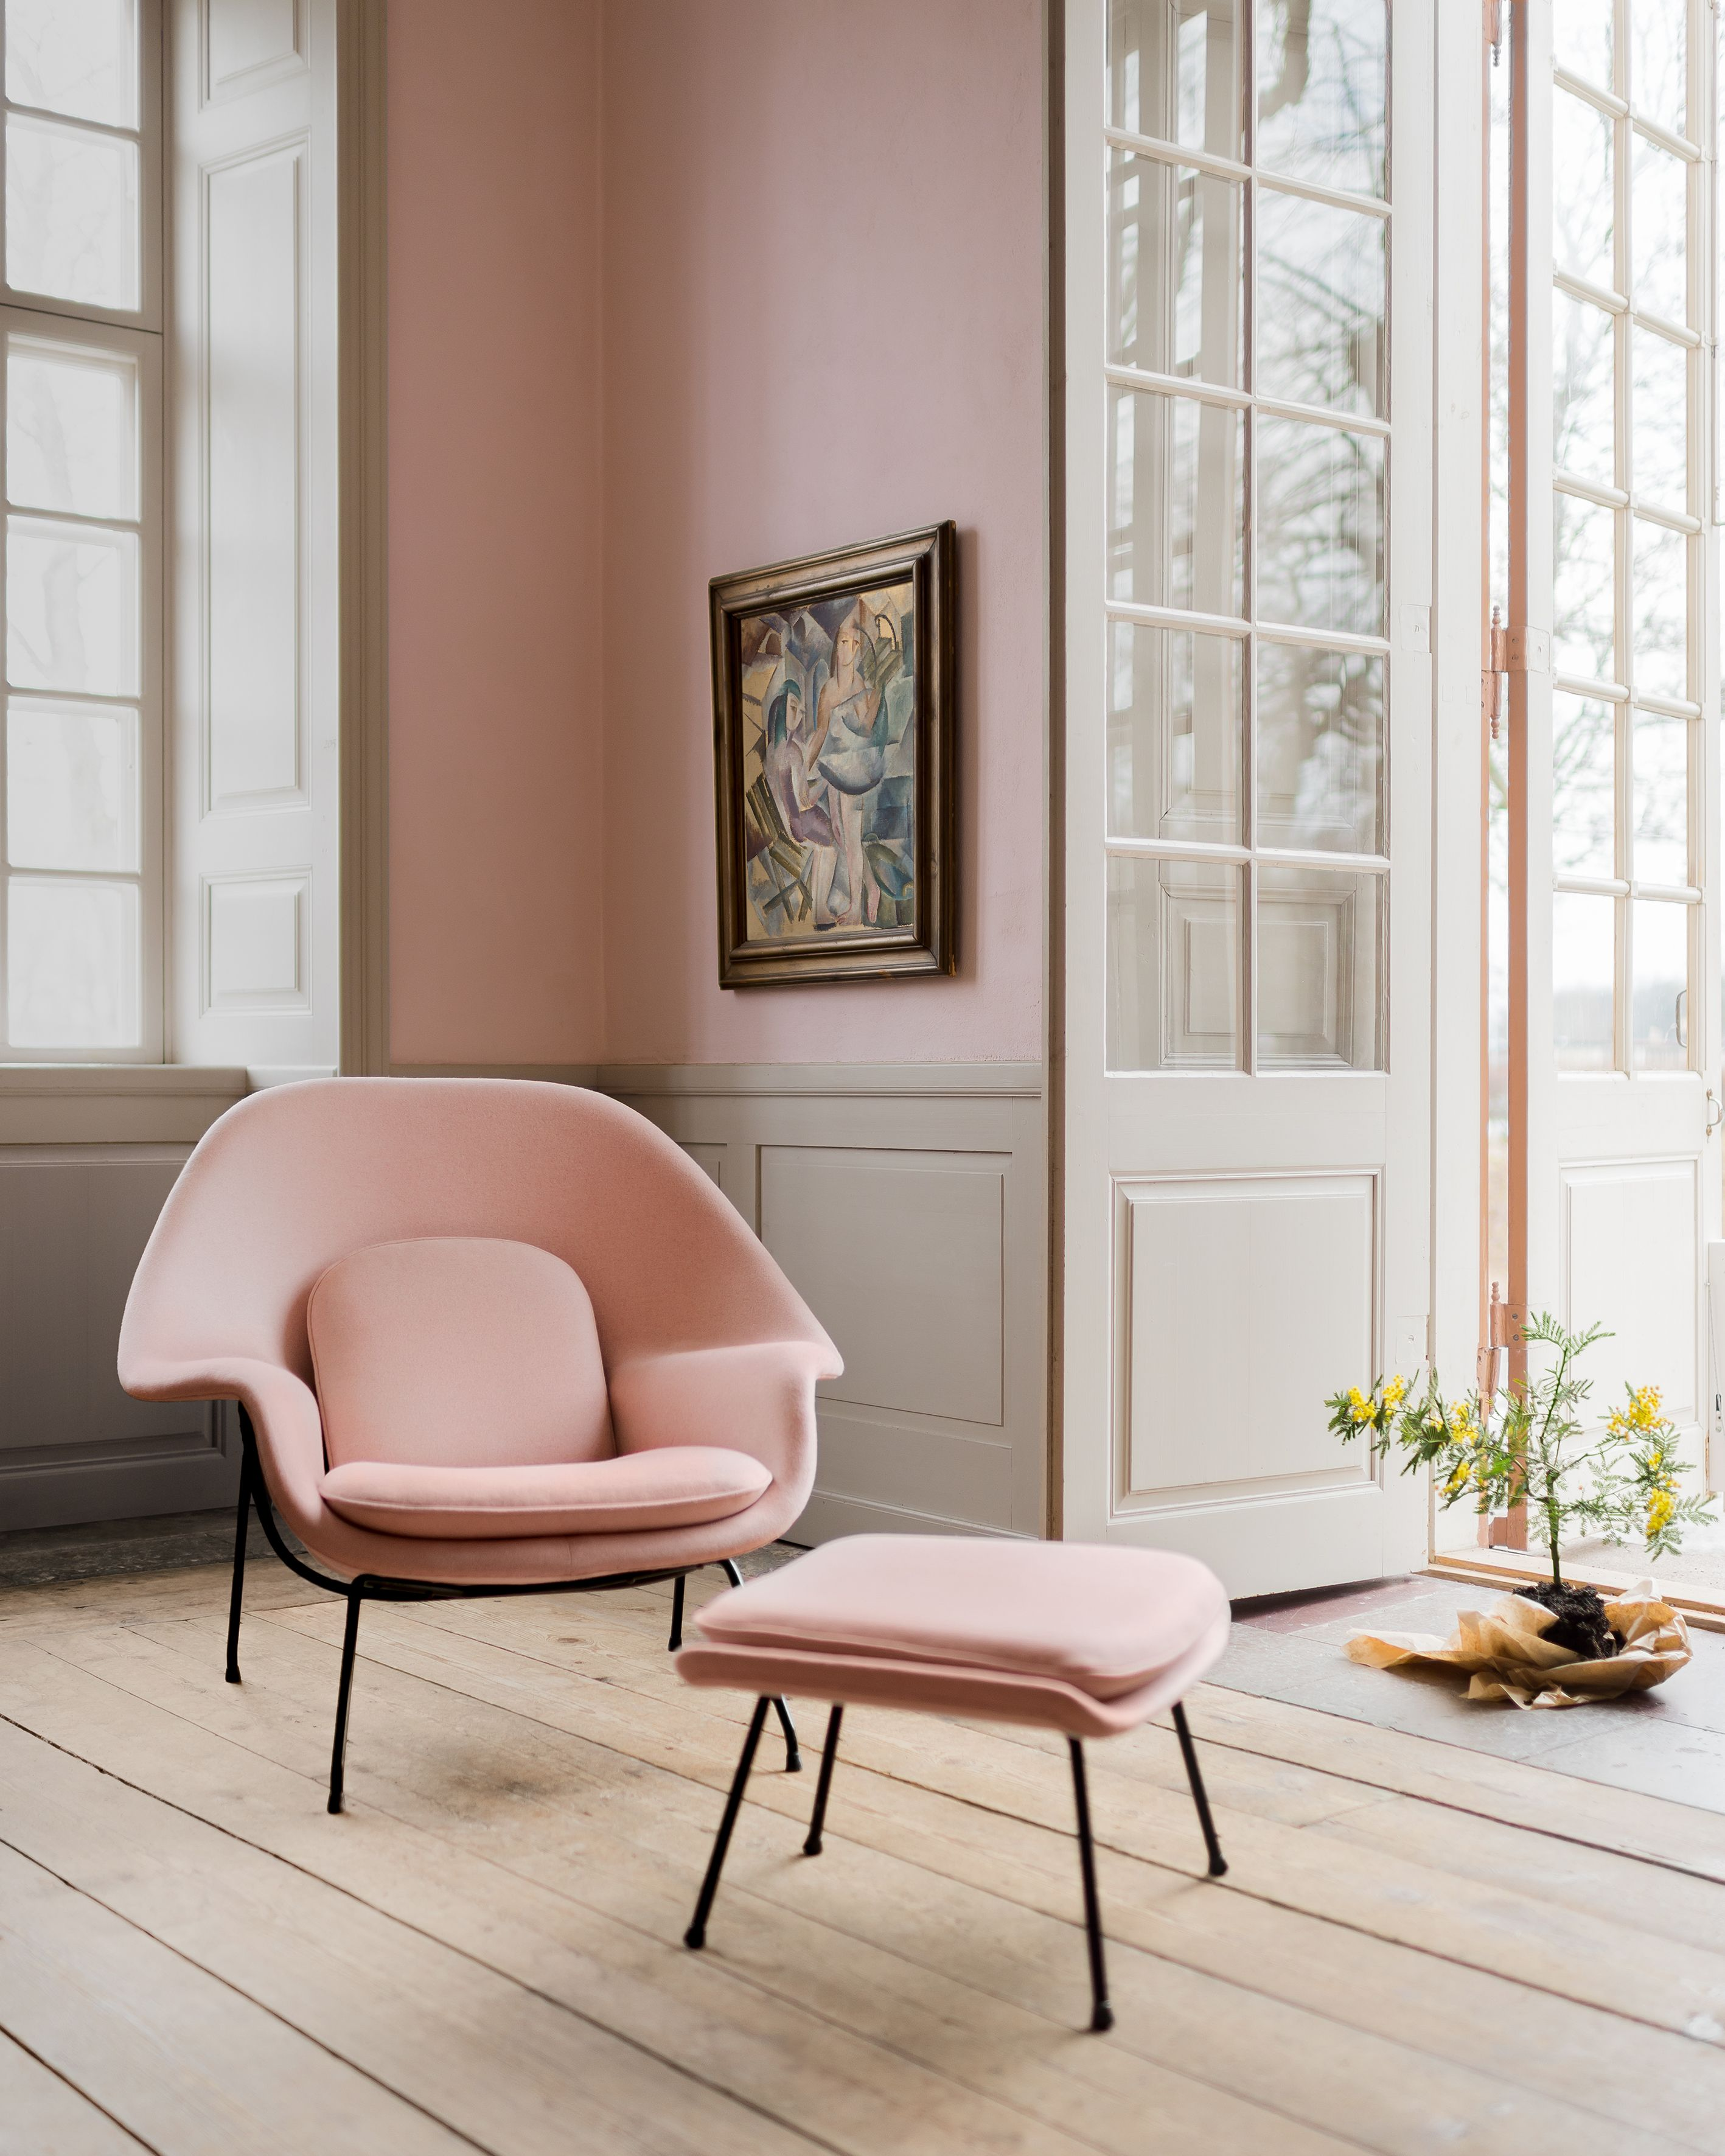 Mia Villa Couchtisch Pin By Gunita Ieva On Interior In 2019 Womb Chair Eero Saarinen